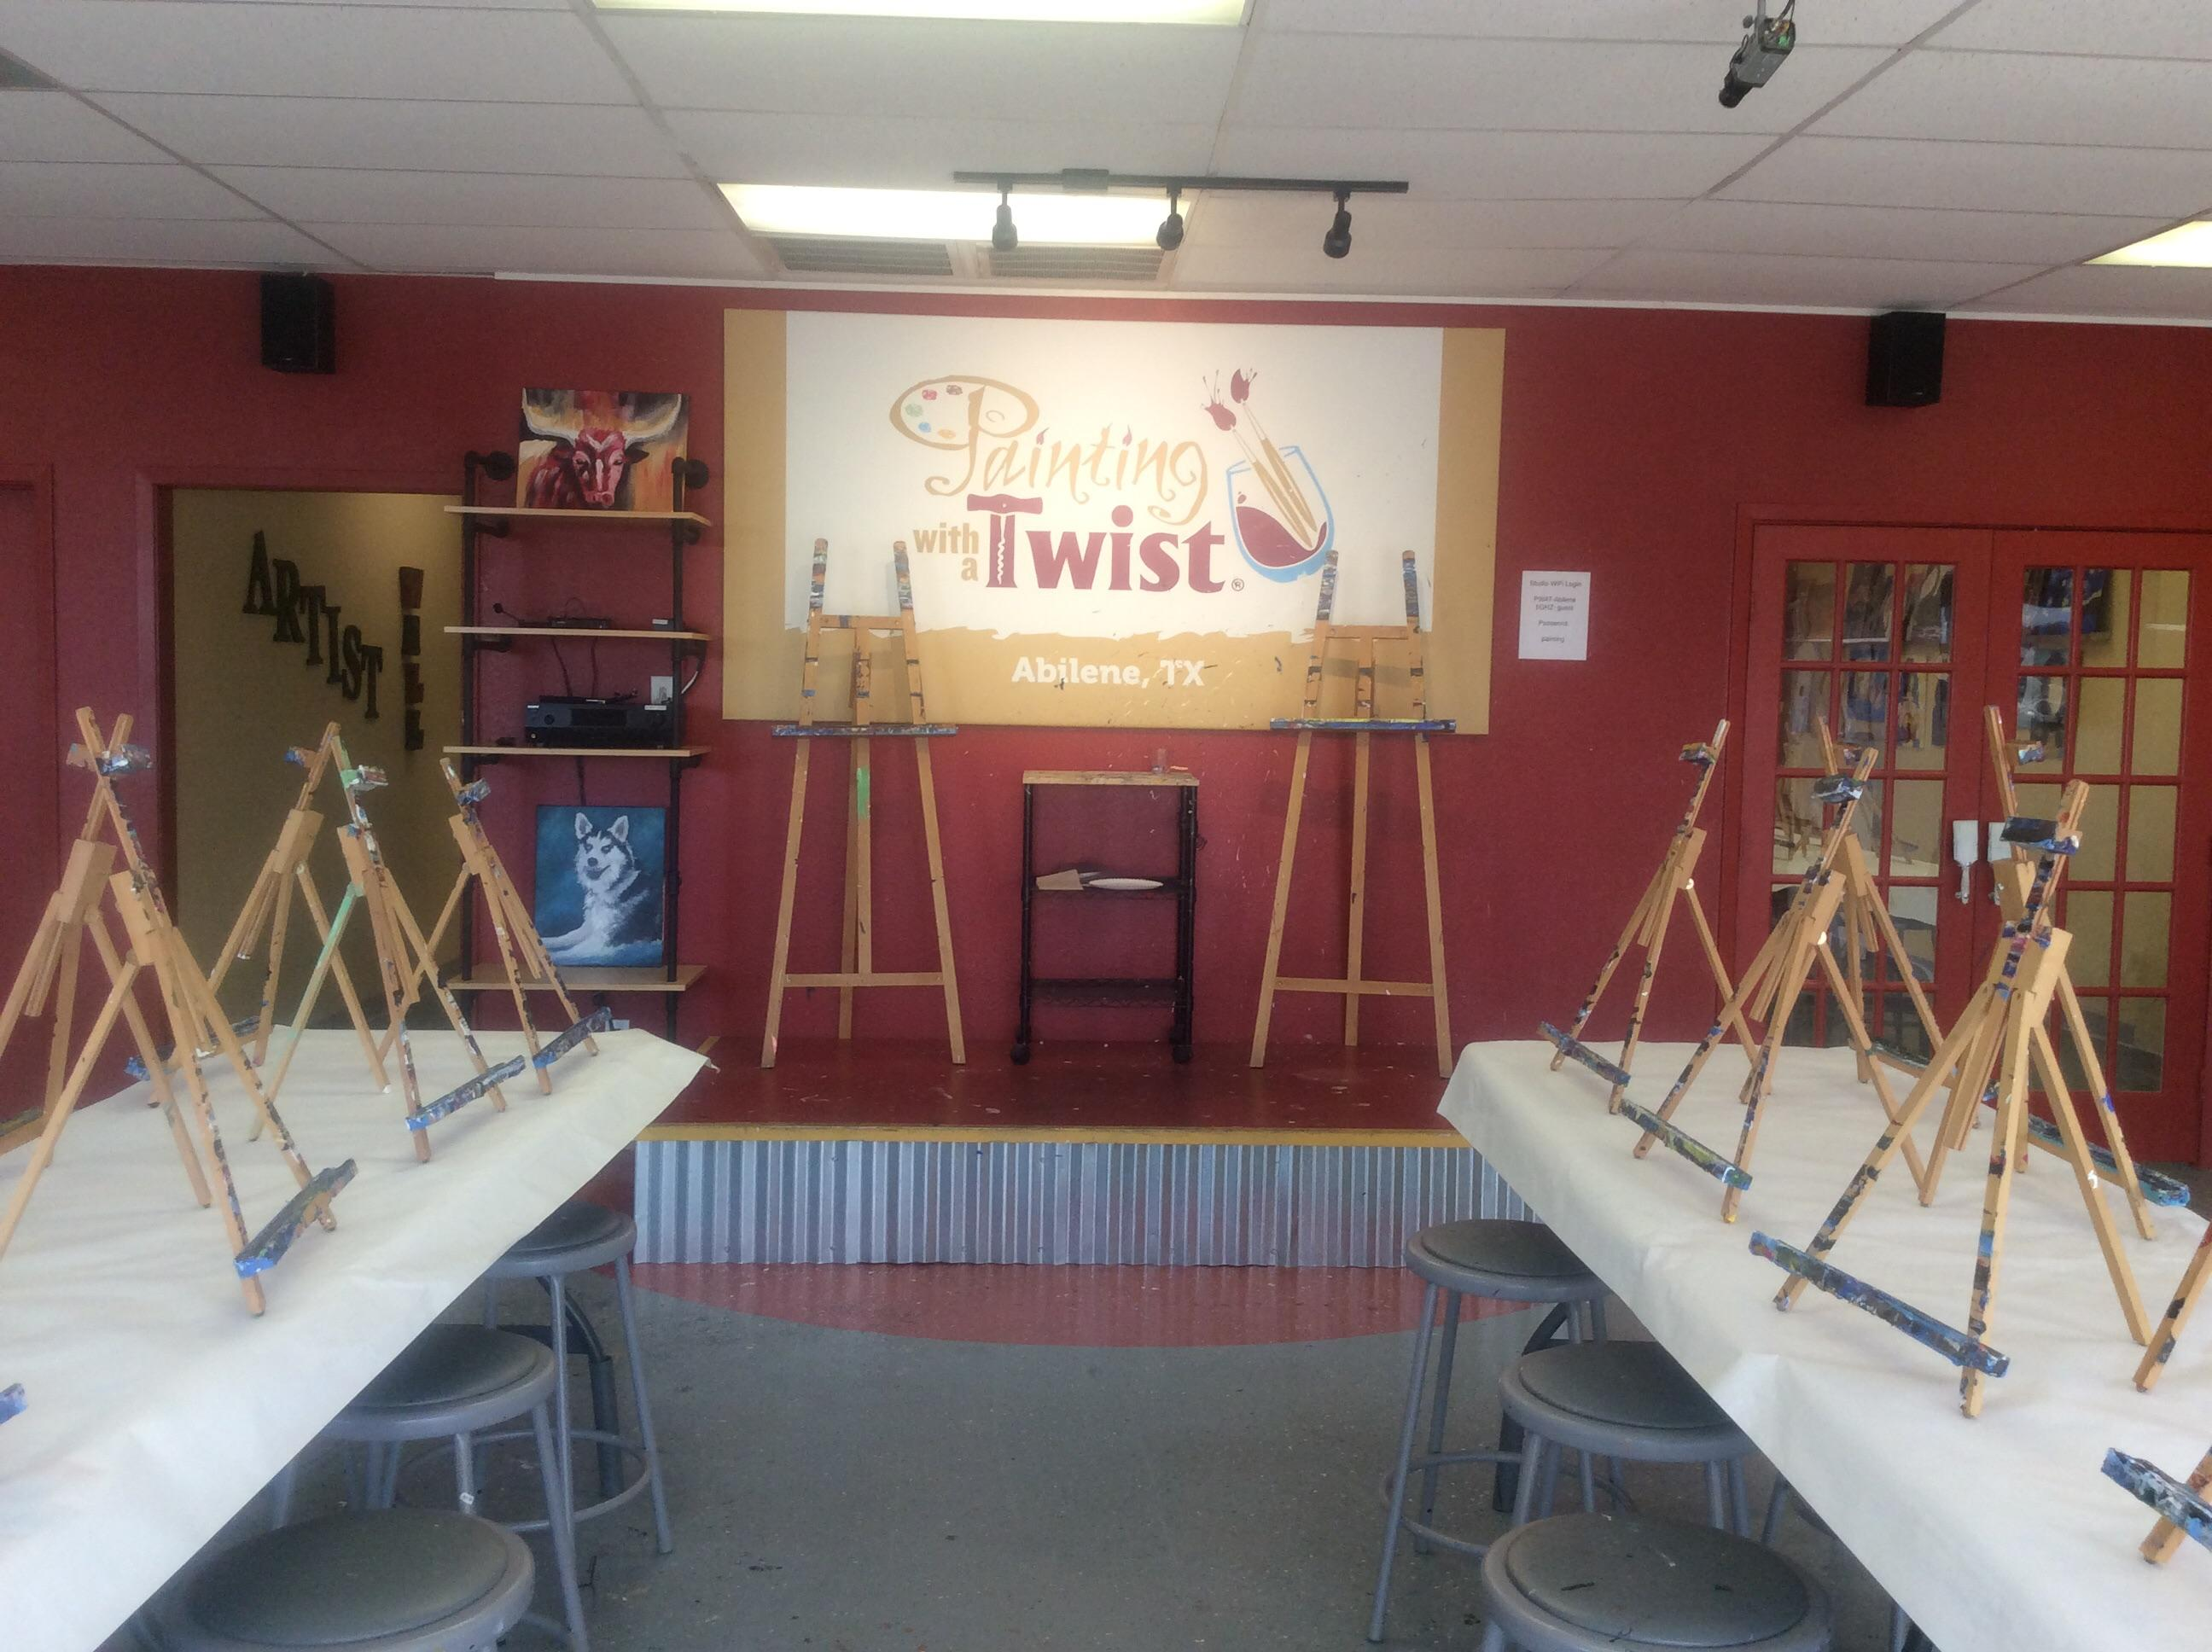 Painting with a twist charlotte nc coupons